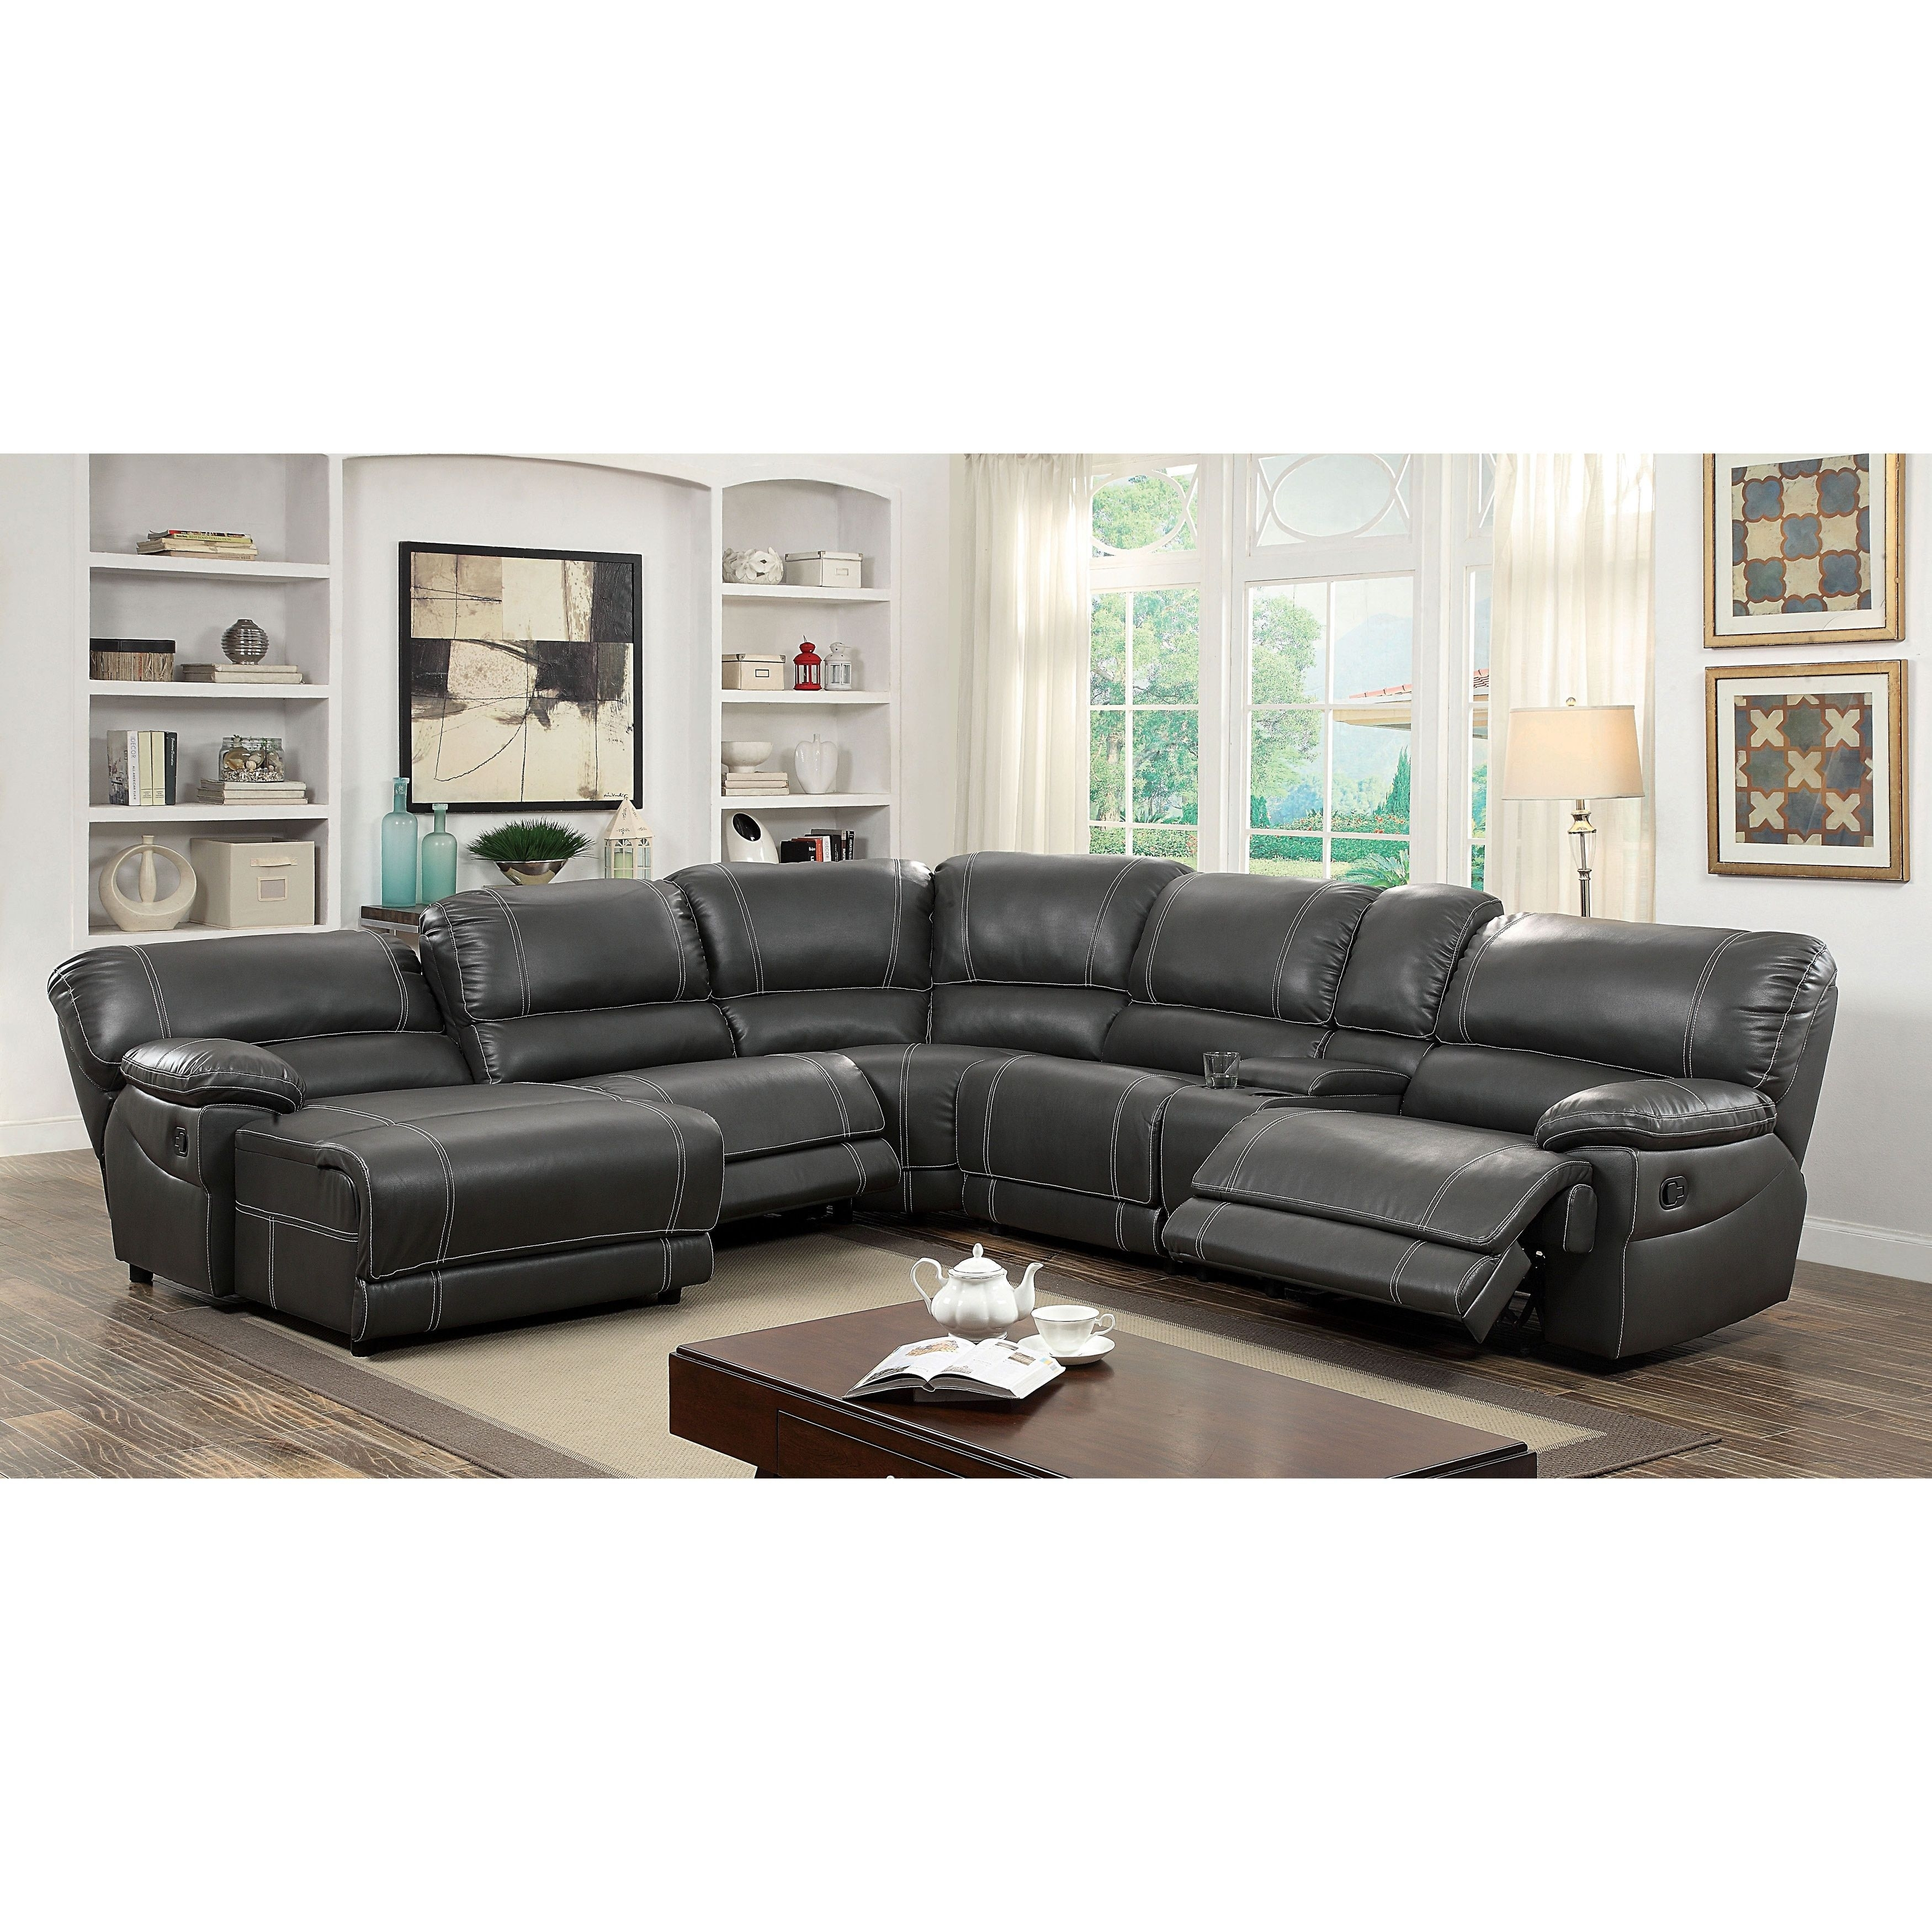 Christopher Reclining Sectional Collection With Denali Charcoal Grey 6 Piece Reclining Sectionals With 2 Power Headrests (View 20 of 25)